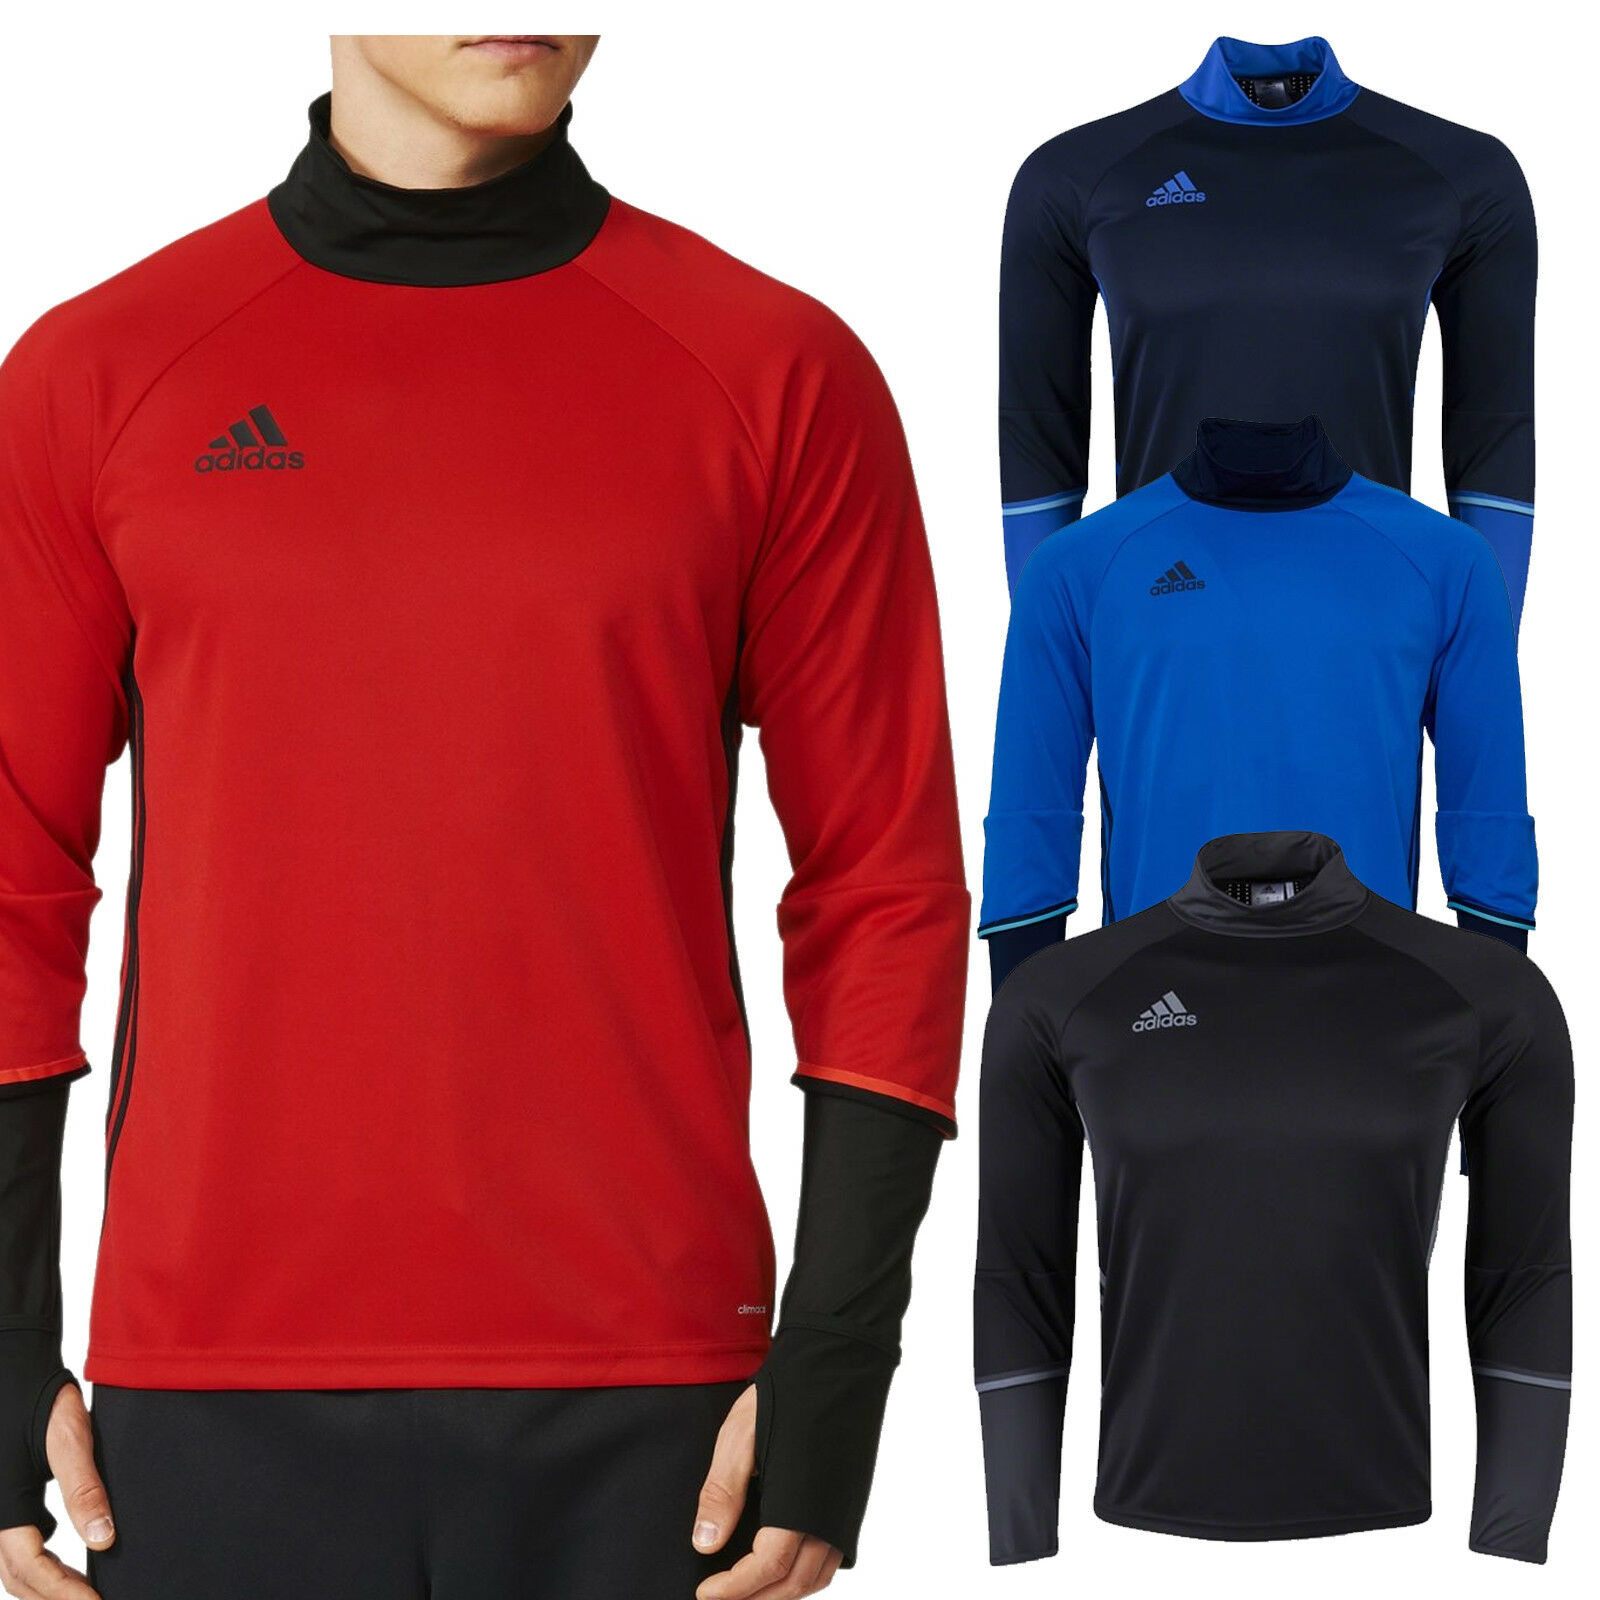 531ab5526 adidas Condivo 16 Mens Training Top Long Sleeve Jersey Climacool New ...